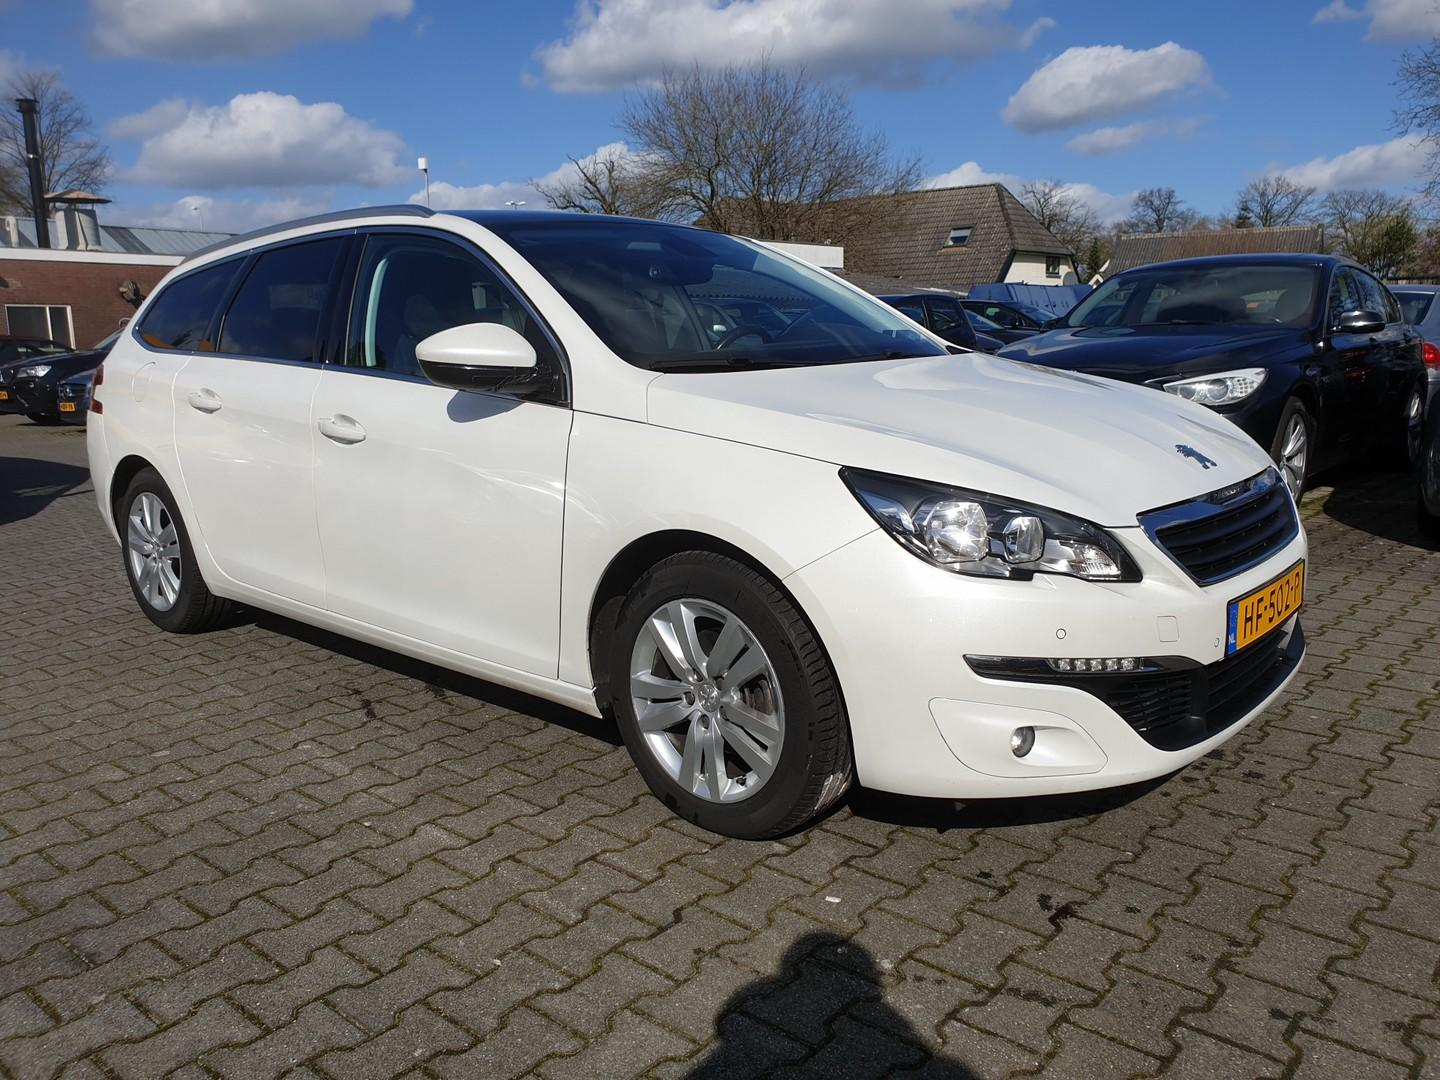 Peugeot 308 Sw 1.6 bluehdi blue lease executive pack *pano+navi+pdc+ecc+cruise*